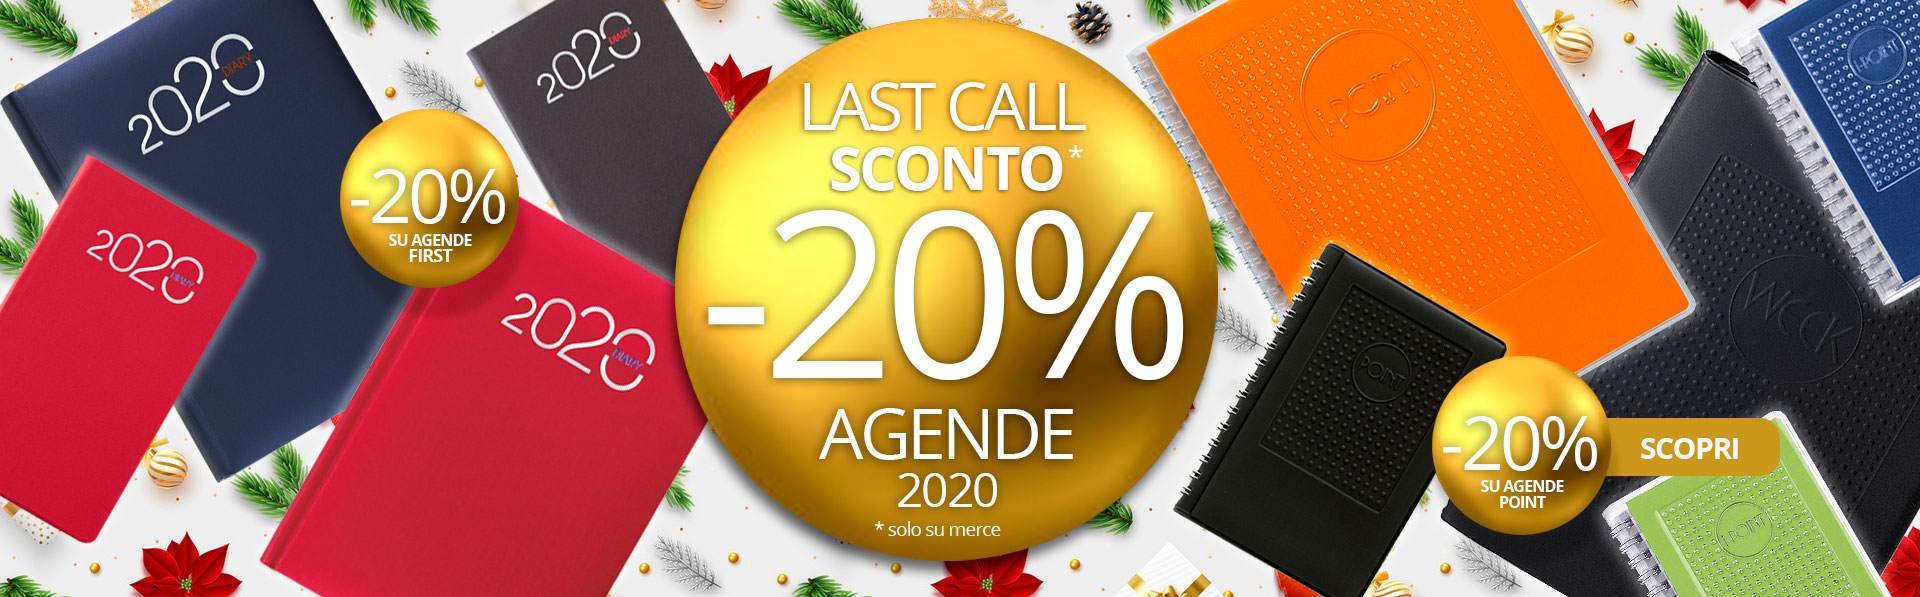 Agende Point e First -20% di sconto